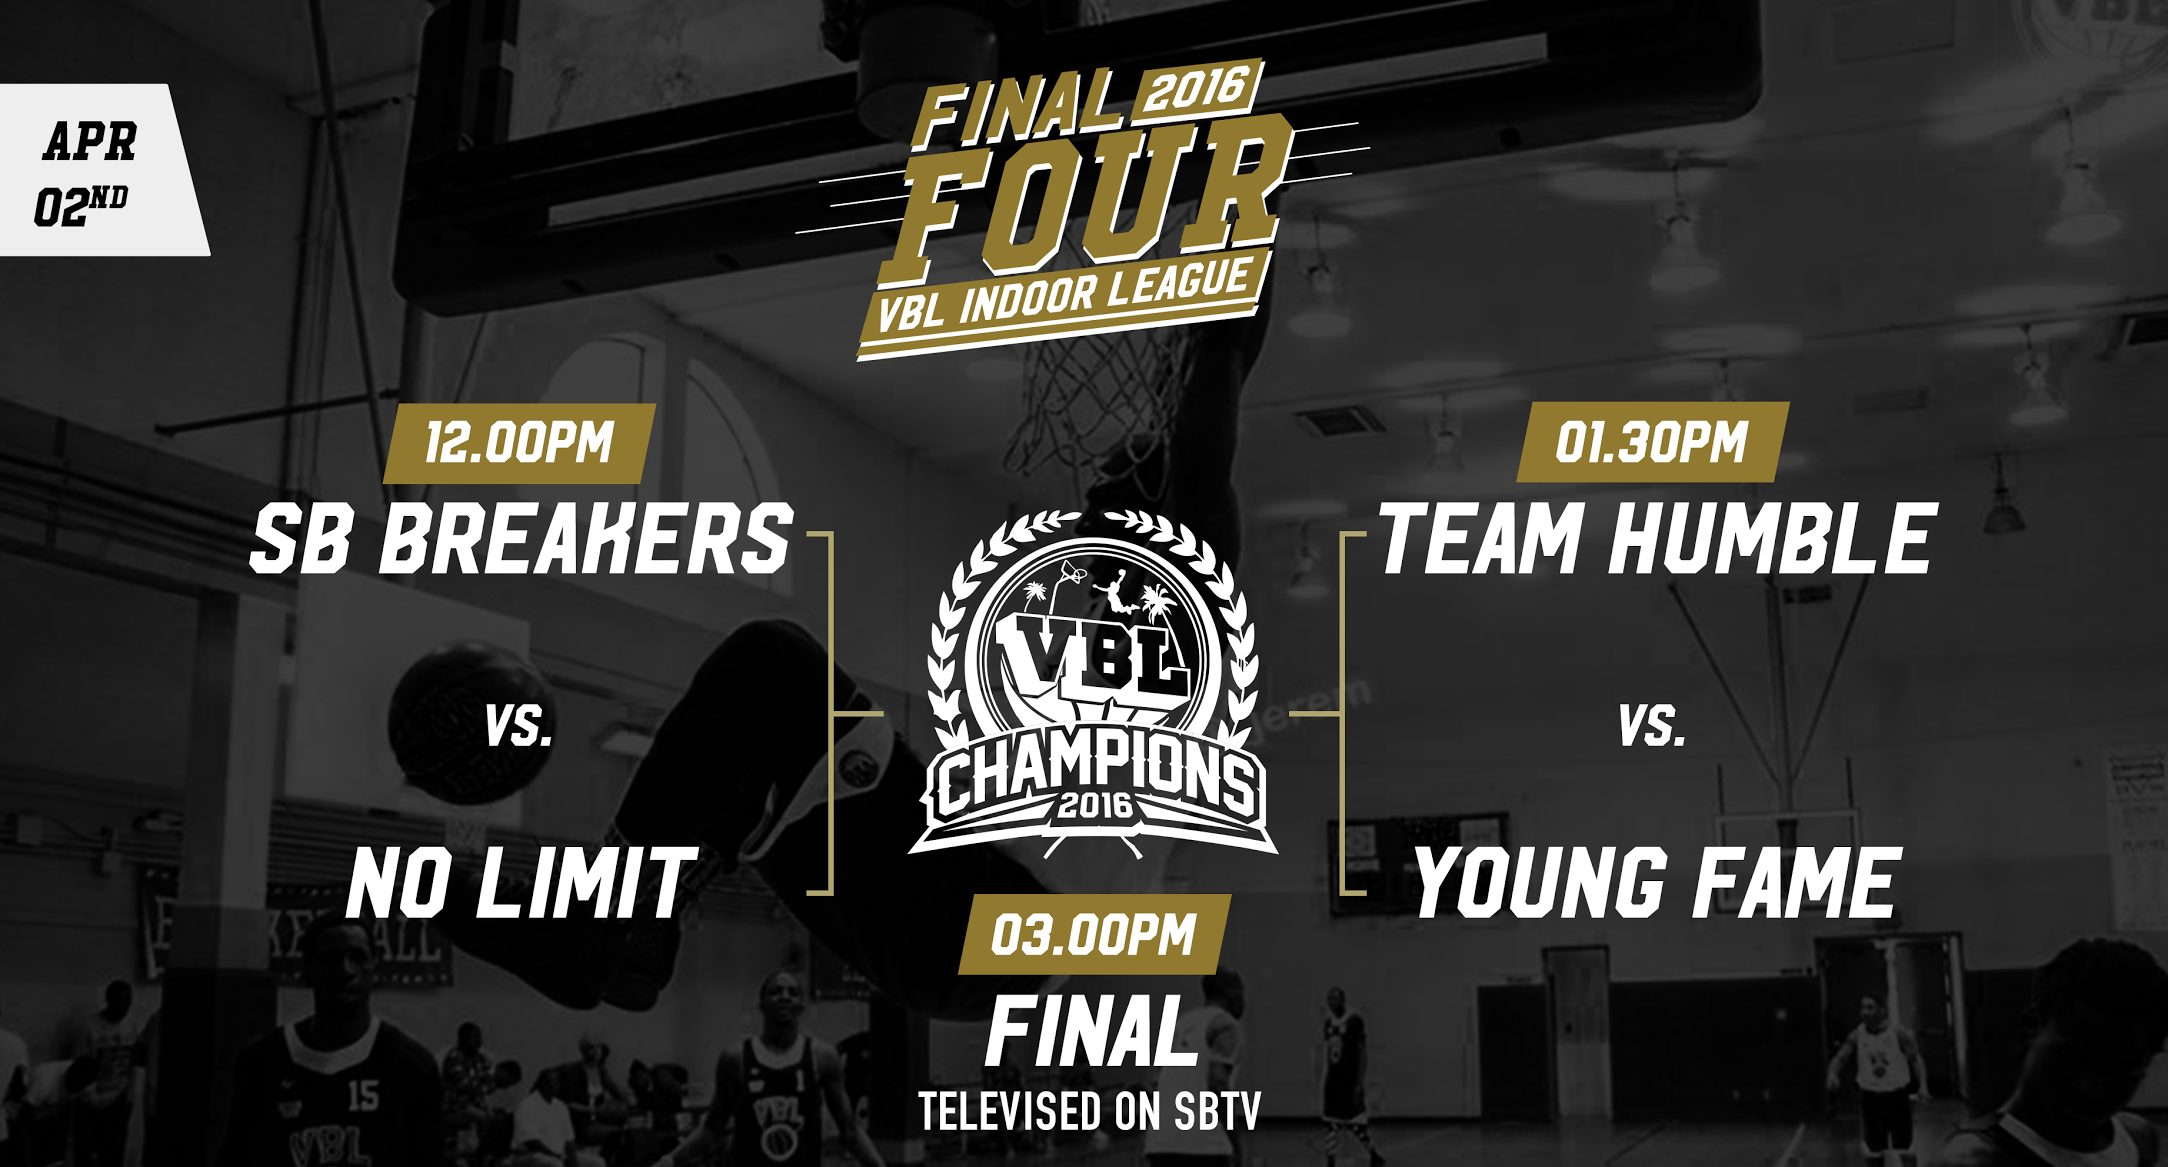 VBL INDOOR FINAL 4 IS HERE + FULL VIDEO